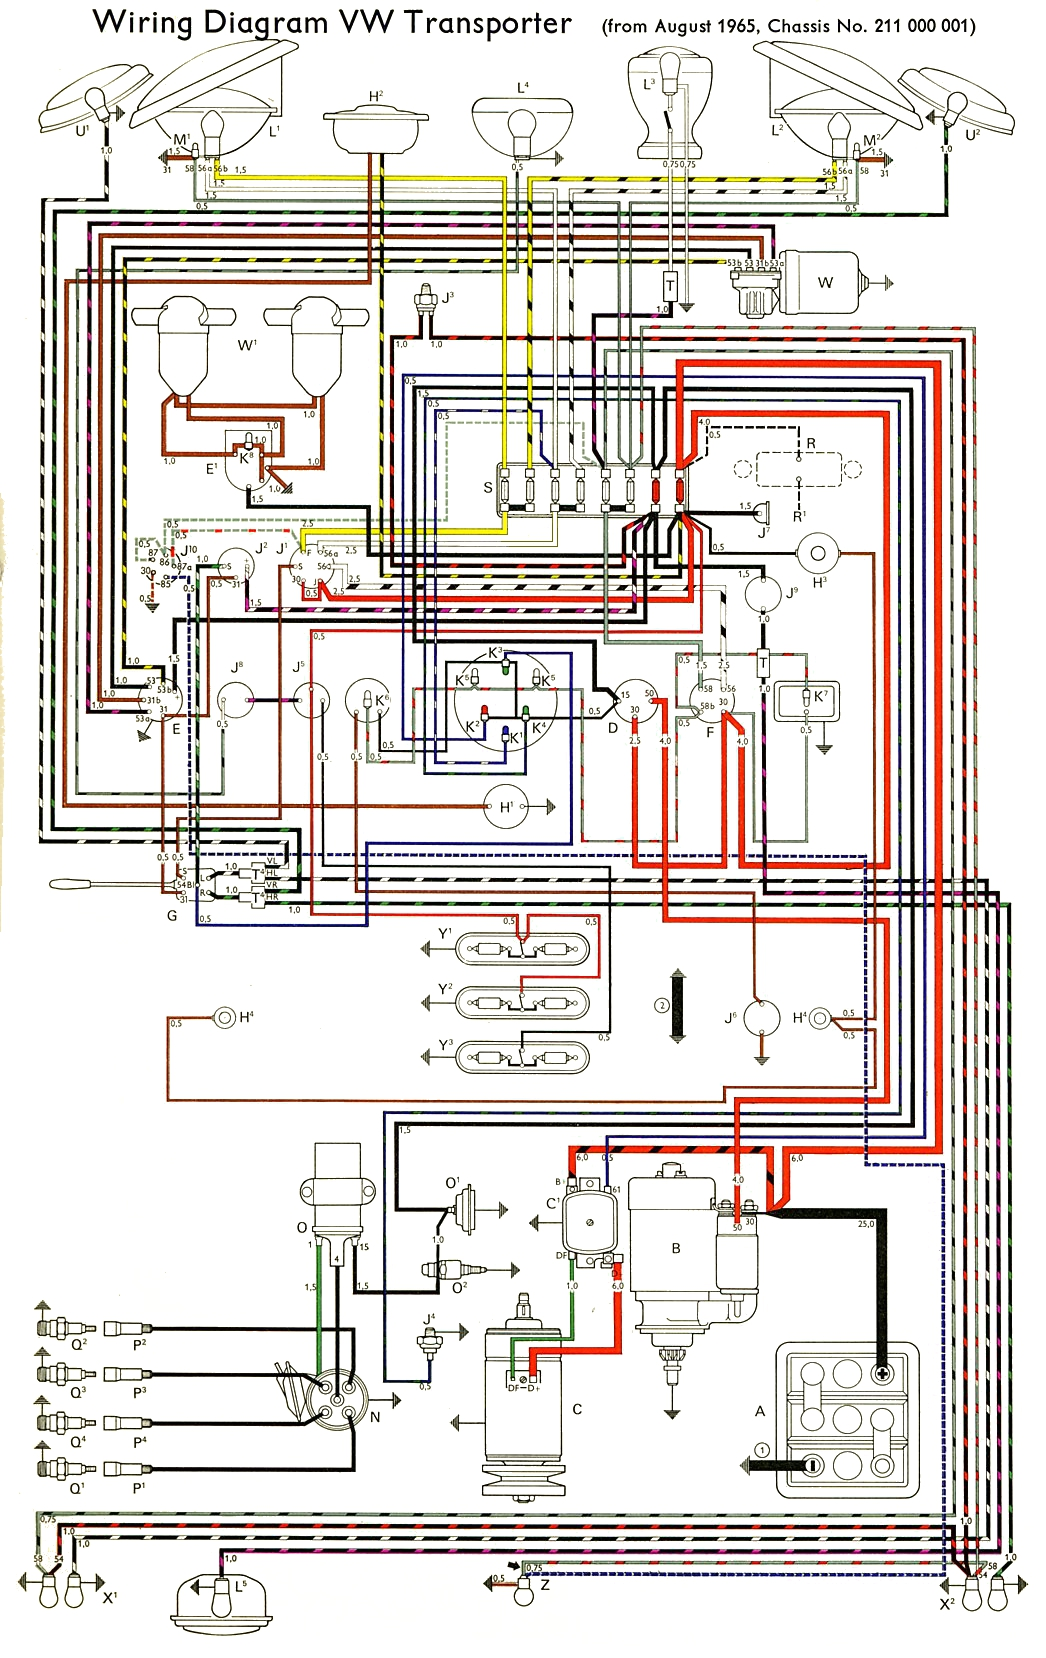 Type 2 Wiring Diagrams 1968 Ford F100 Diagram Pdf